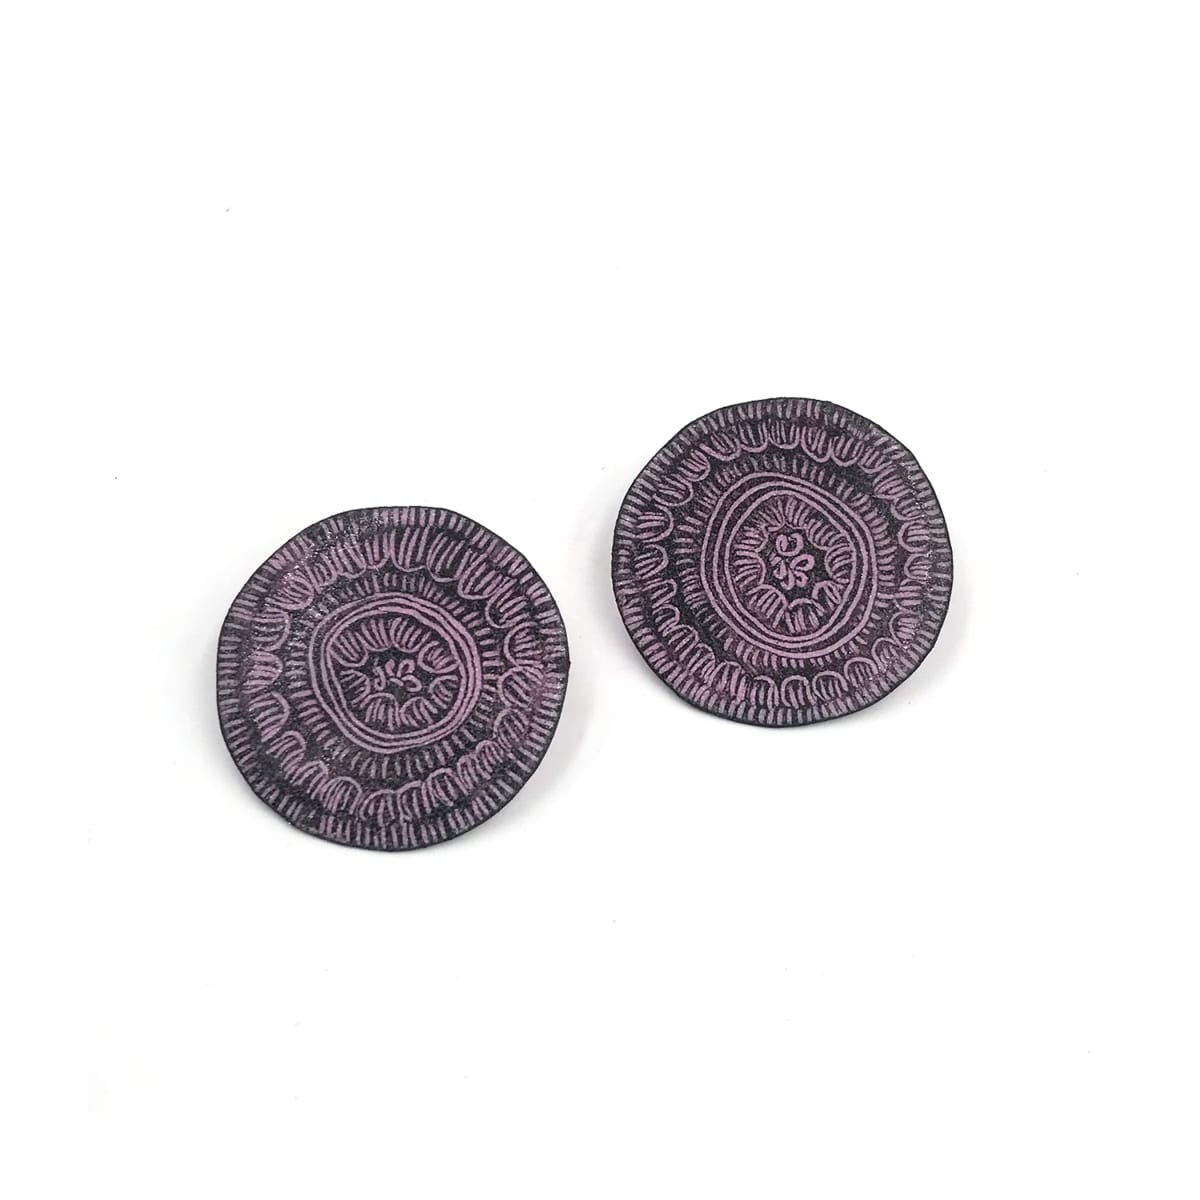 "Tanya Crane, Small (1.5"") round loop and dash pink earrings"